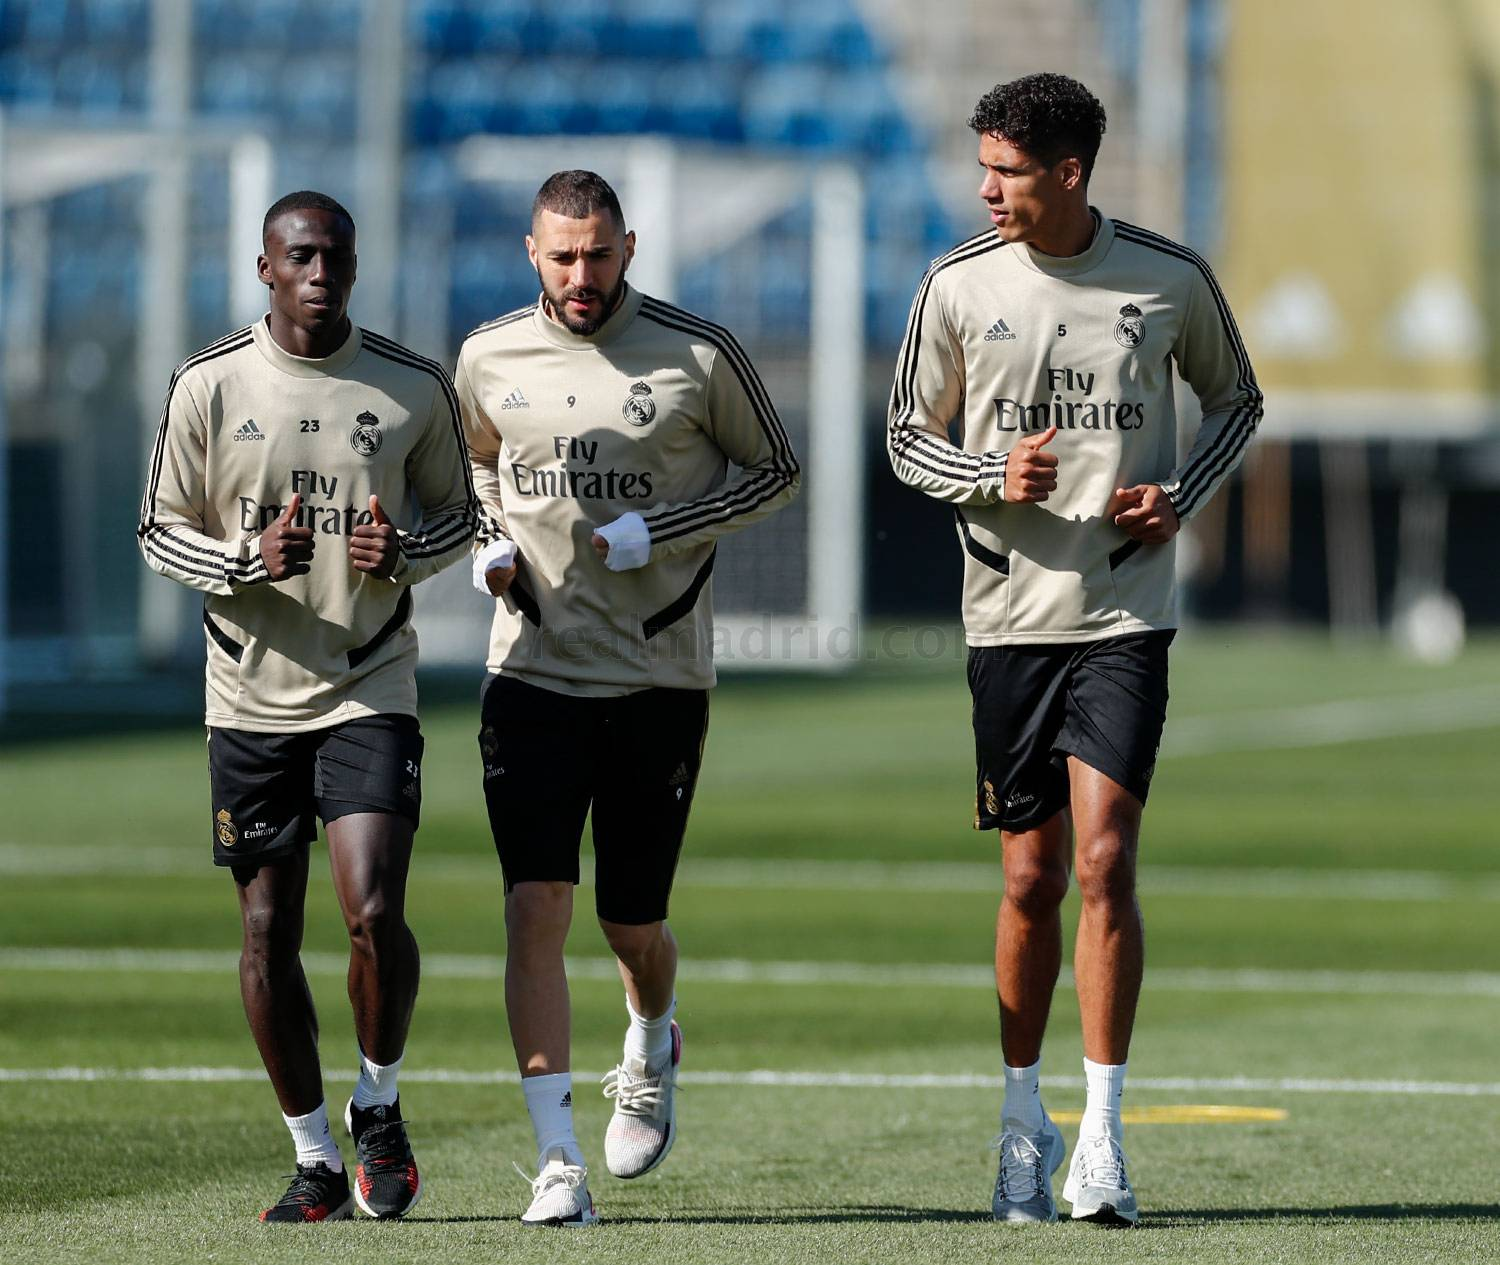 Real Madrid - Entrenamiento del Real Madrid  - 27-02-2020